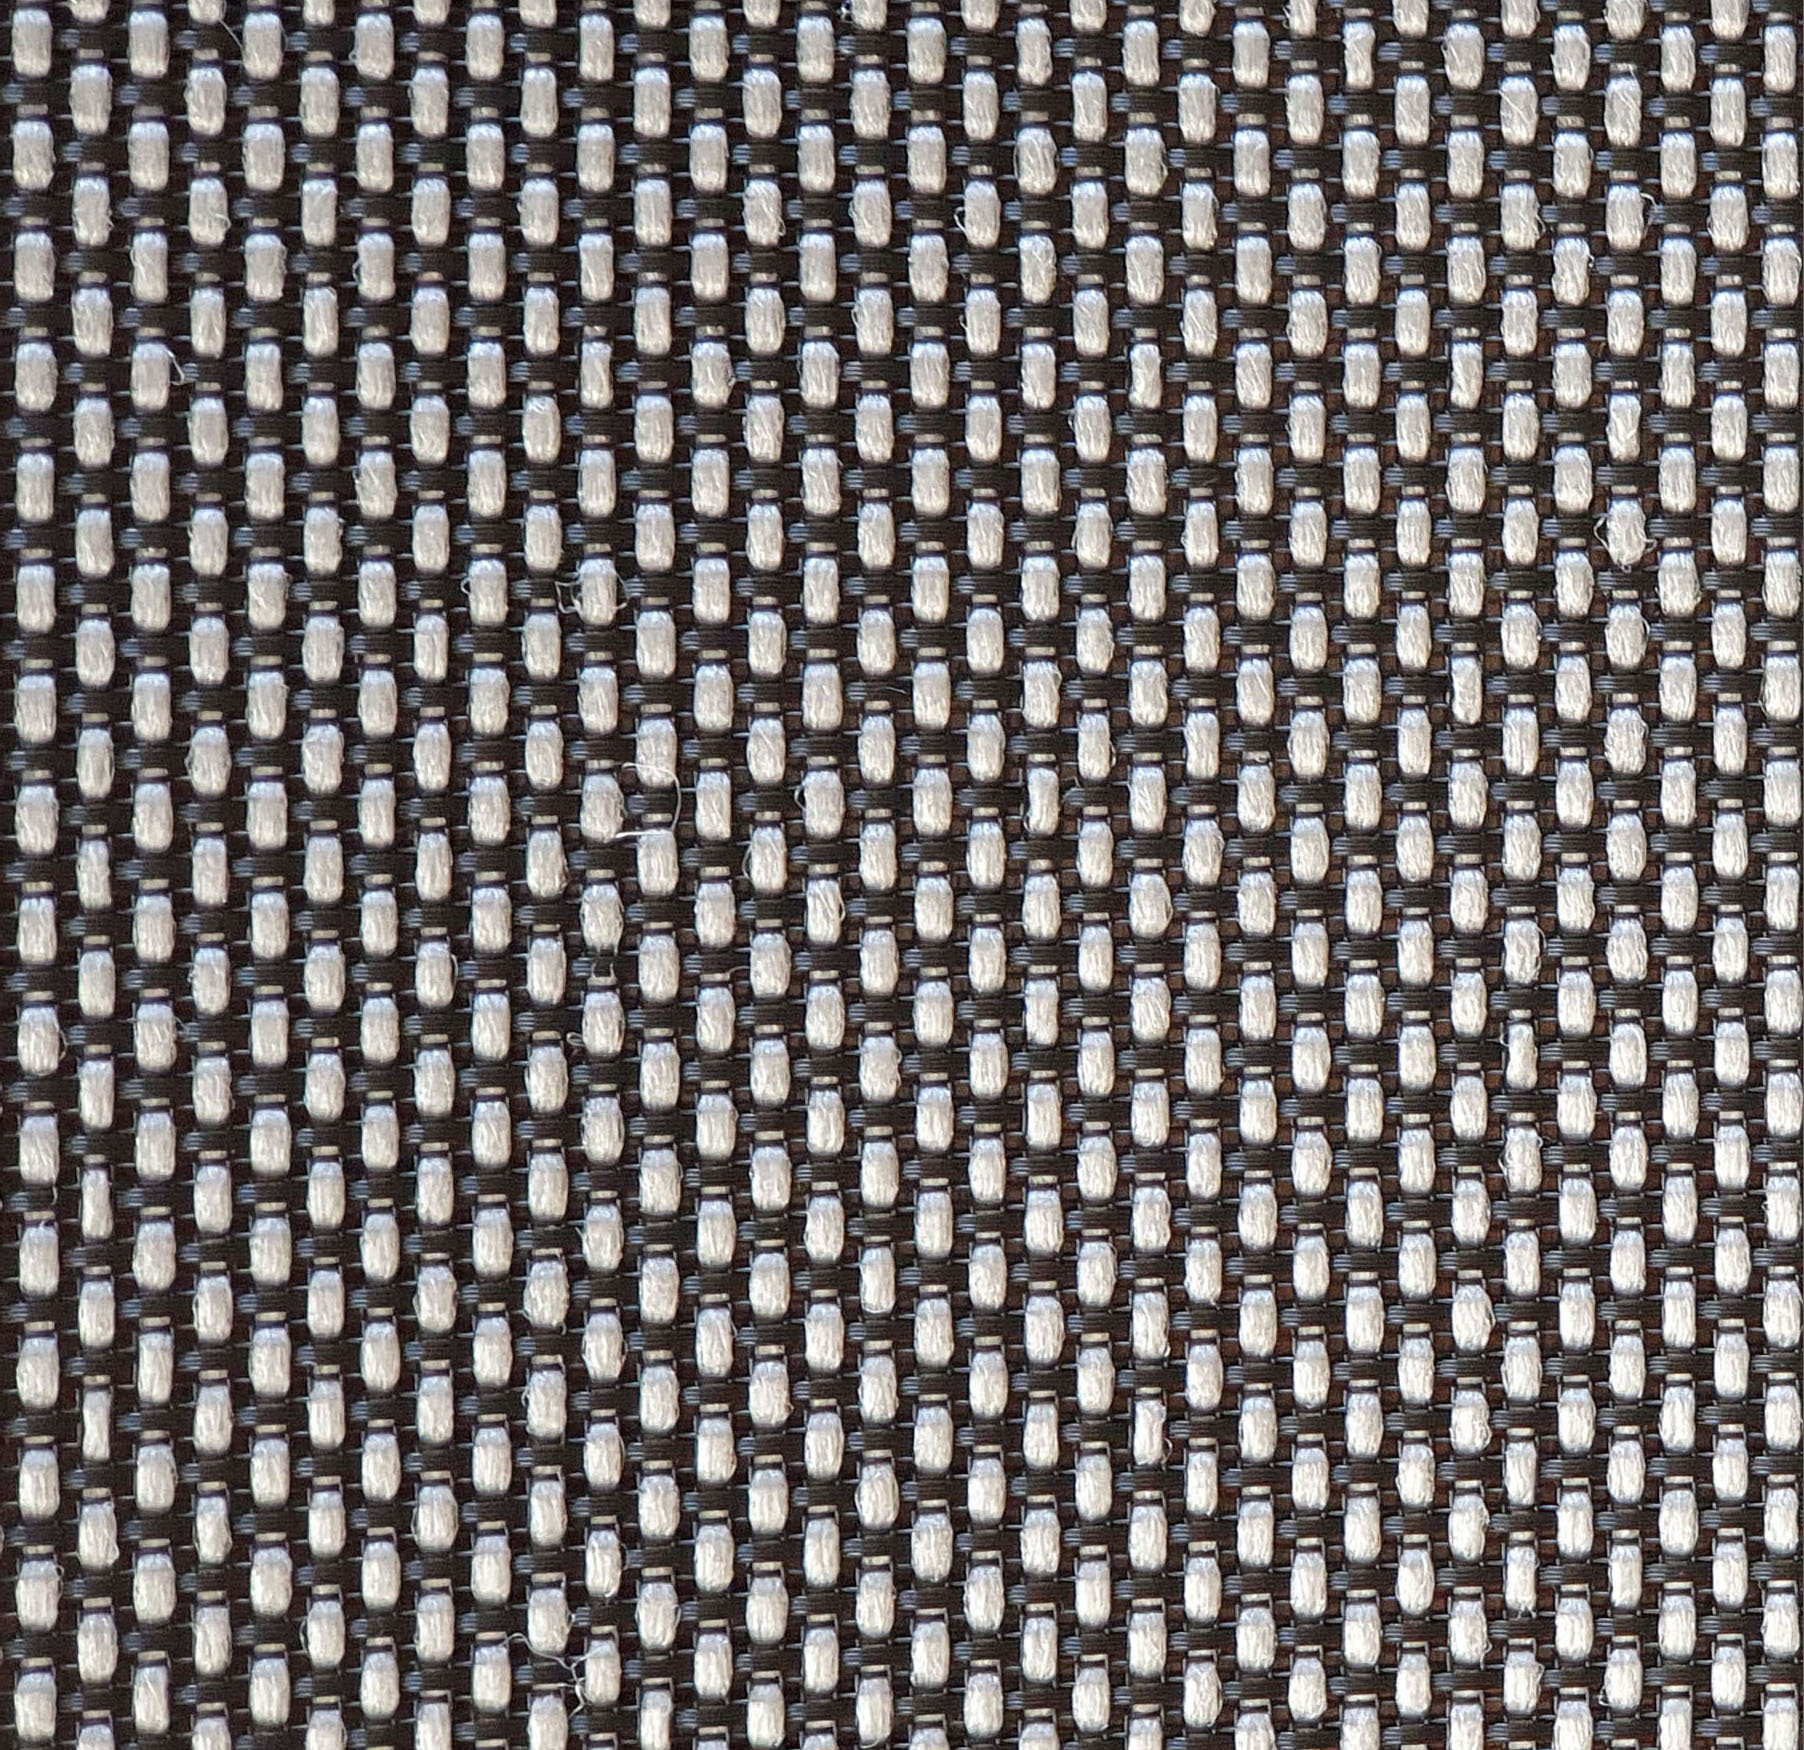 Soundlabs Group Designer Acoustic Cloth Sample Swatches